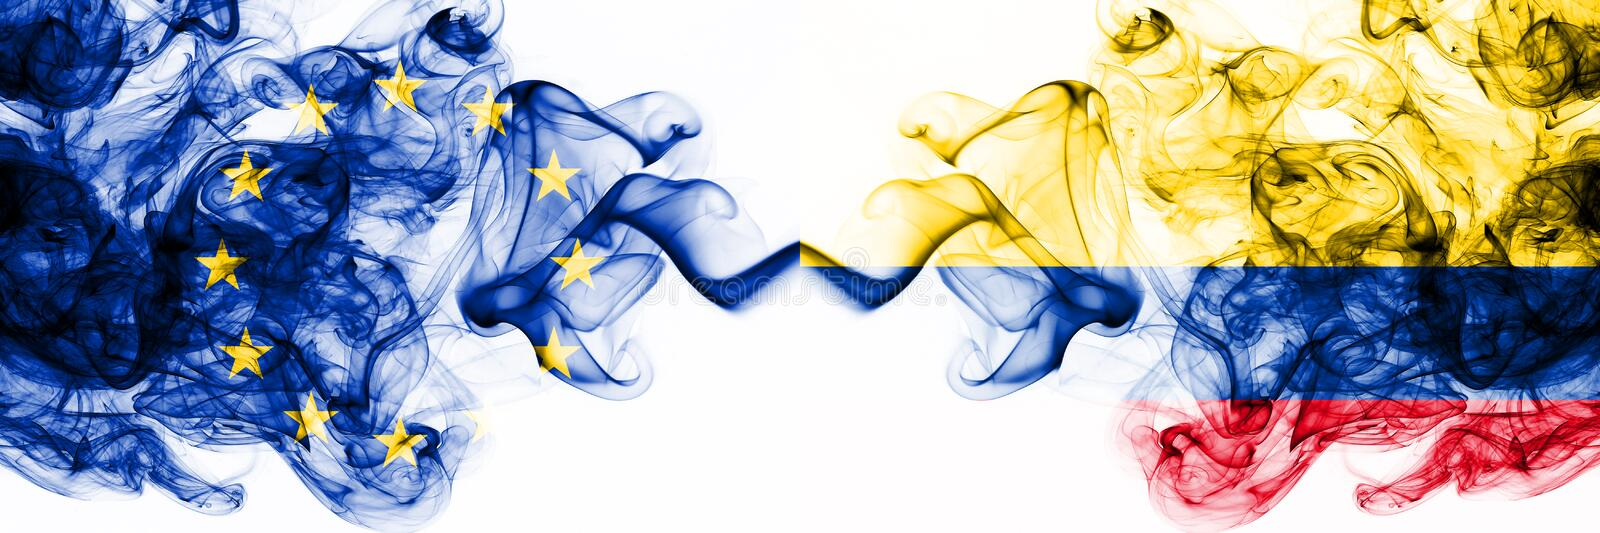 Eu, European Union vs Colombia, Colombian smoky mystic flags placed side by side. Thick colored silky abstract smoke flags. Eu, European Union vs Colombia royalty free illustration